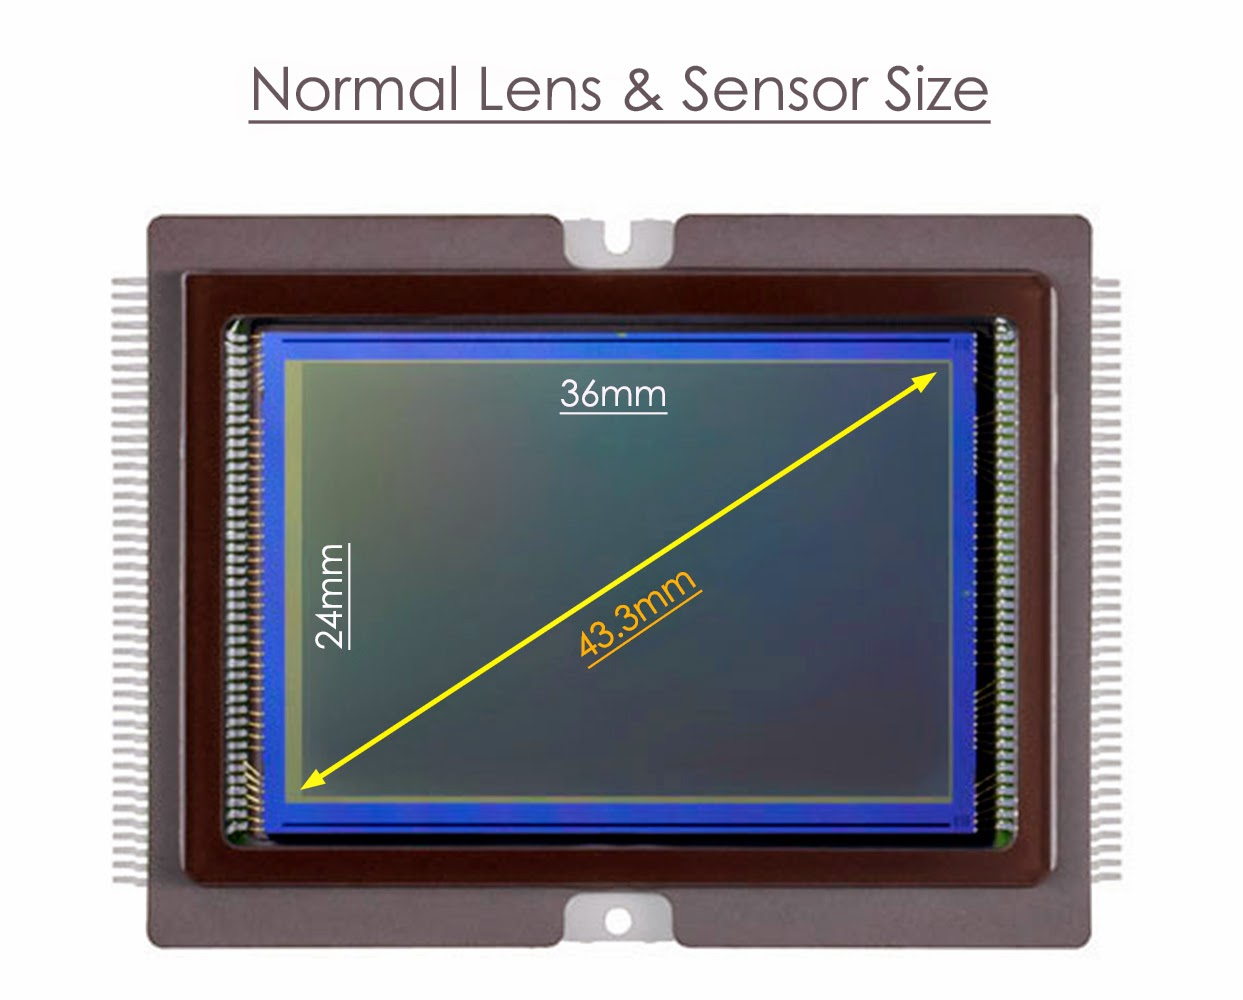 Normal Lens and Sensor Size